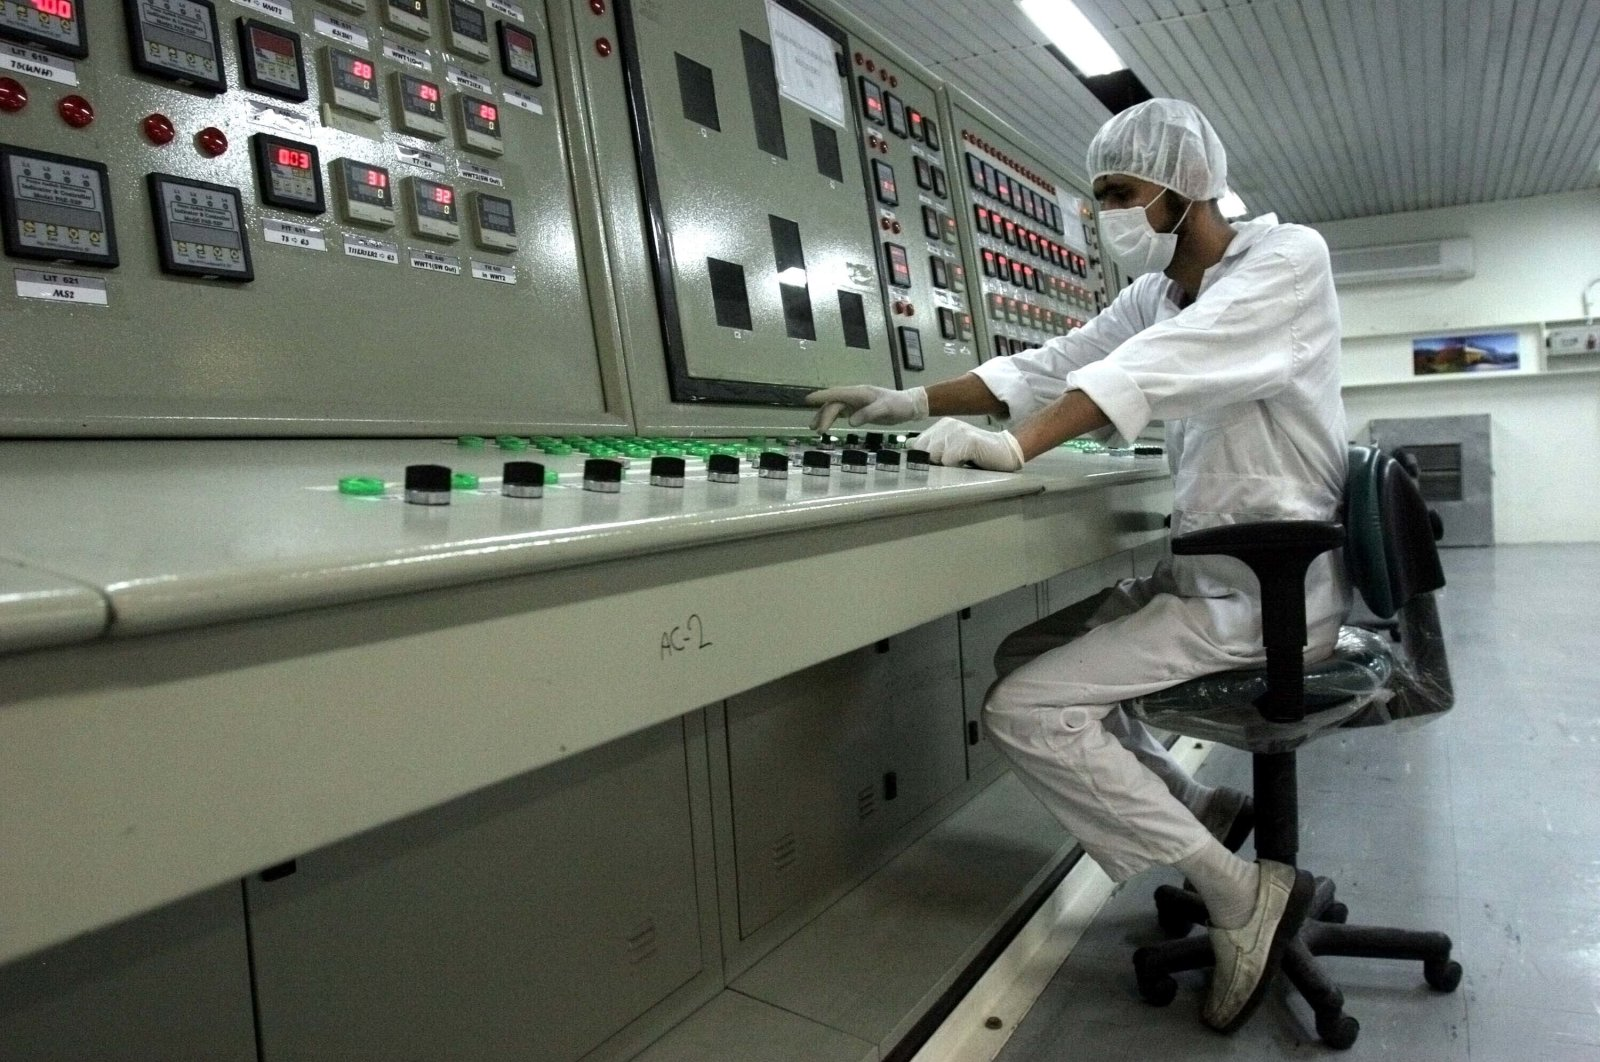 A technician works at the Uranium Conversion Facility just outside the city of Isfahan, Iran, 255 miles (410 kilometers) south of the capital Tehran, Feb. 3, 2007. (AP Photo)